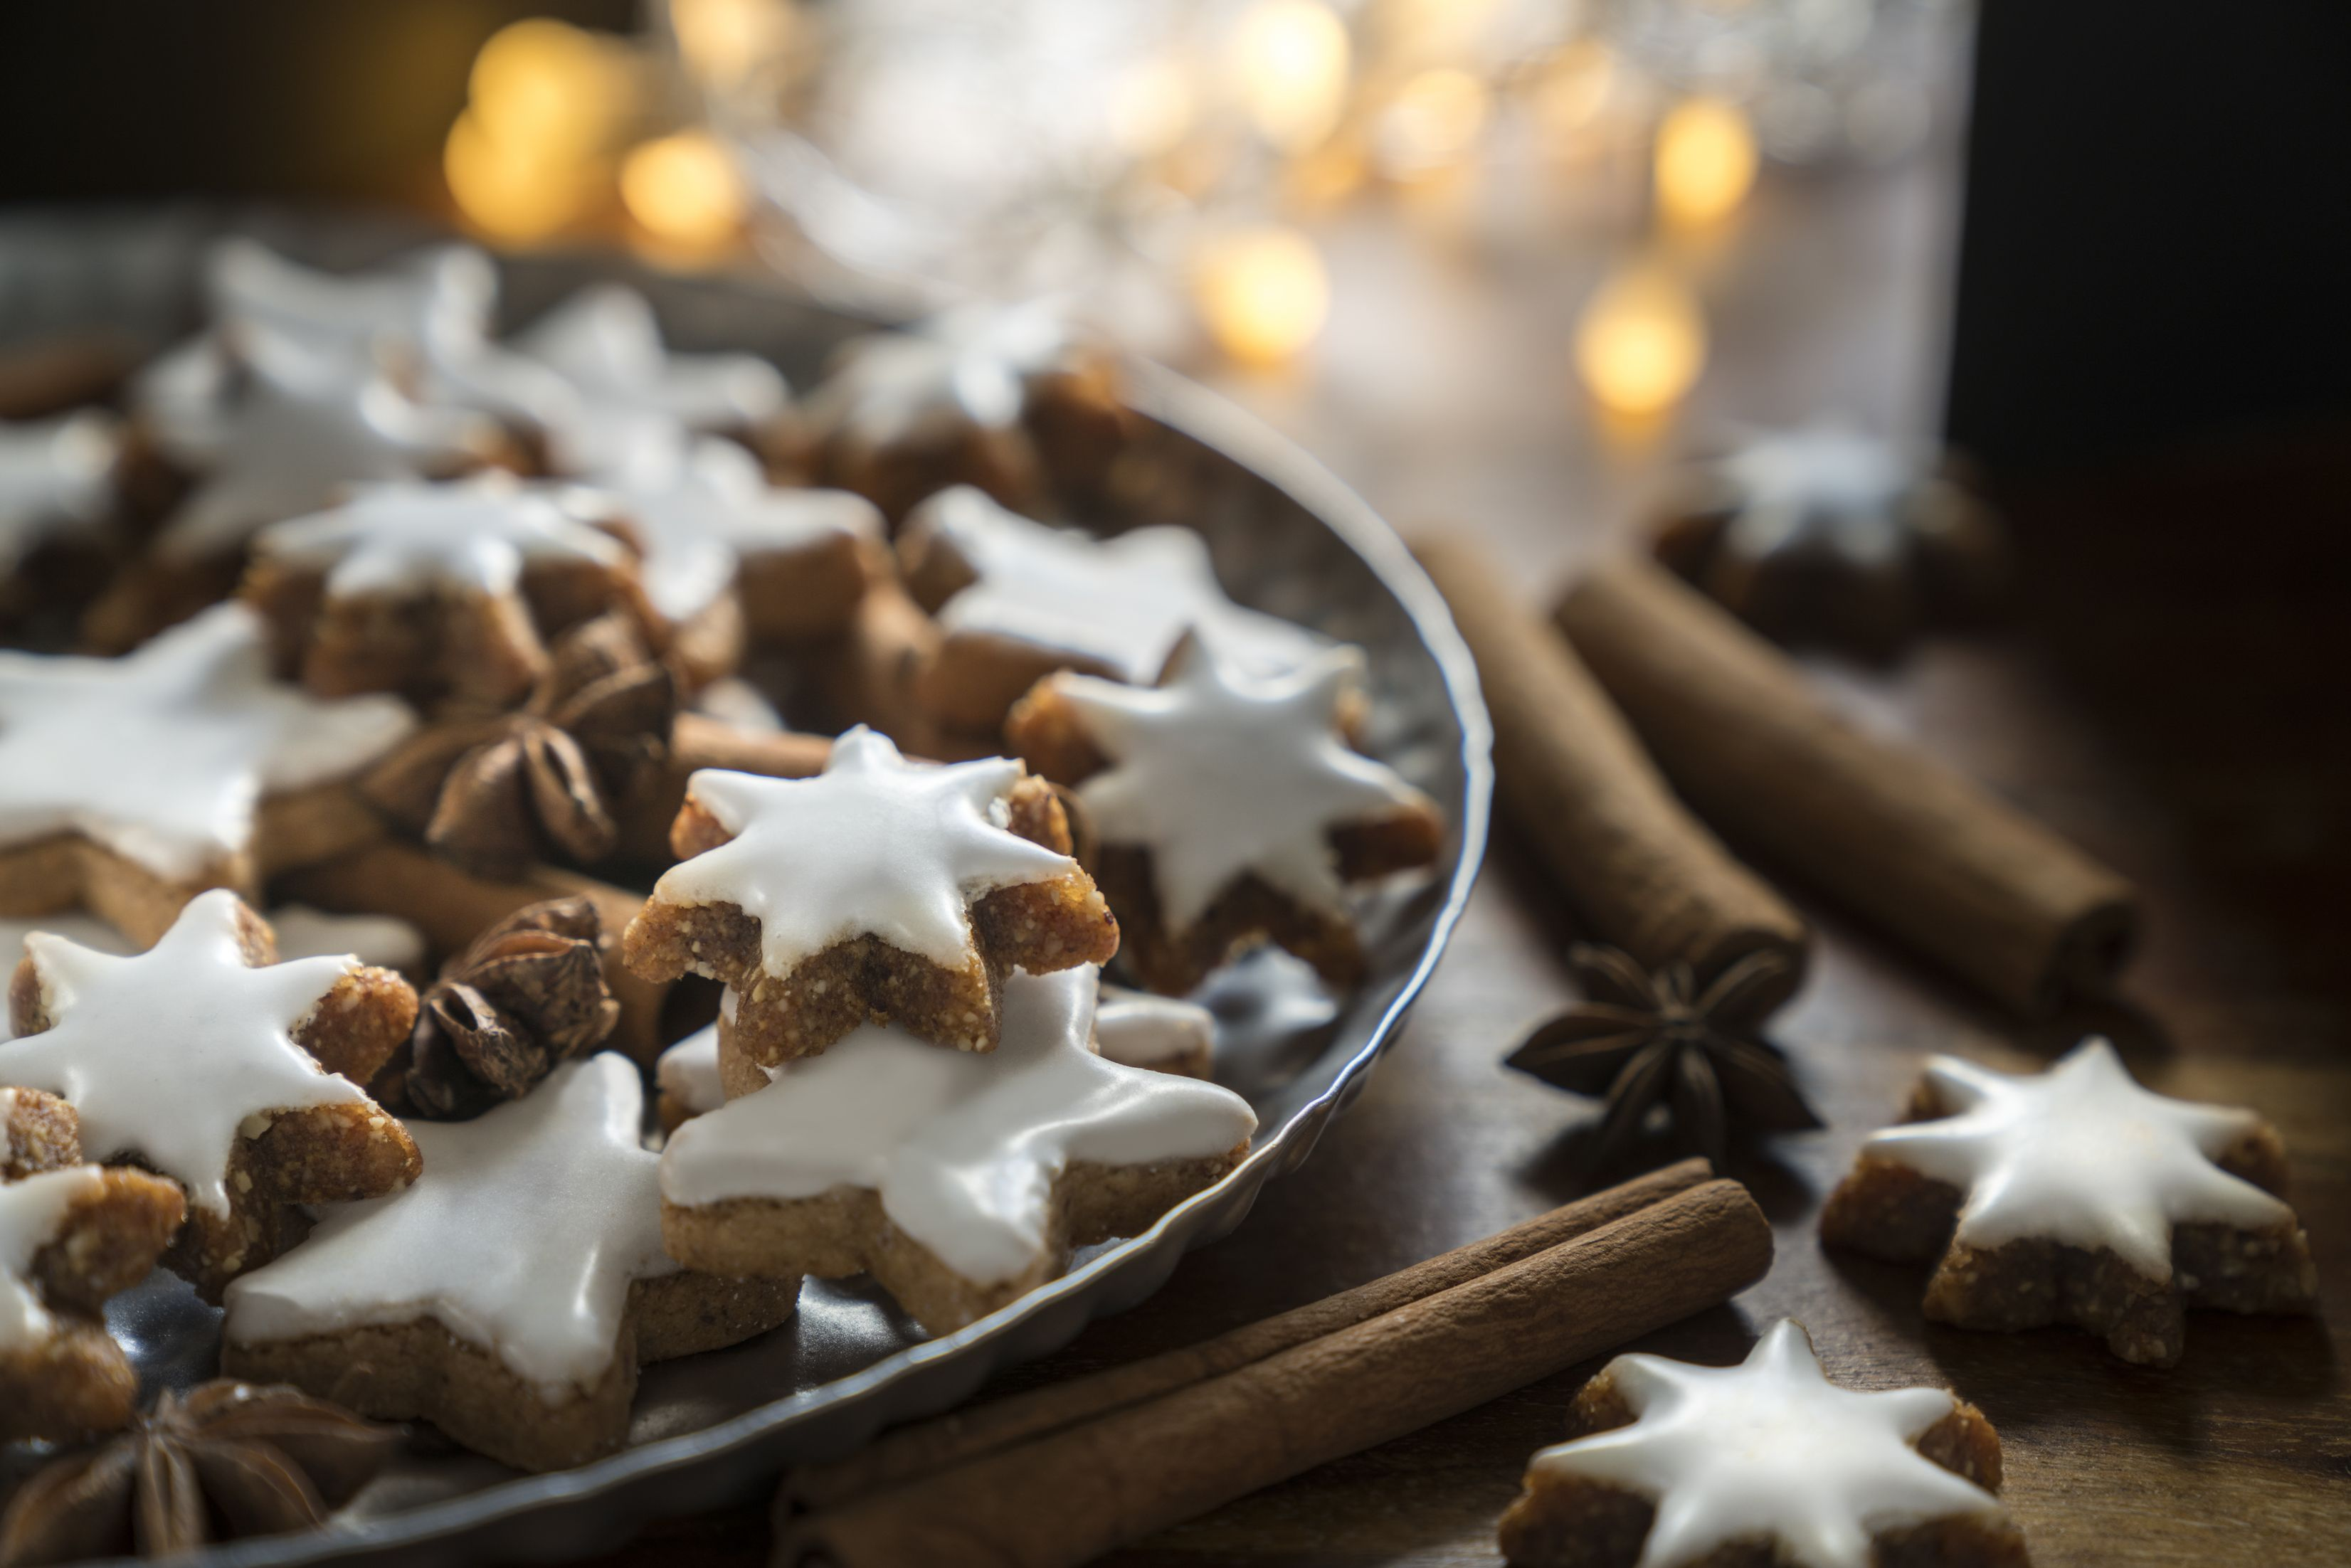 10 popular German Christmas traditions and their meanings